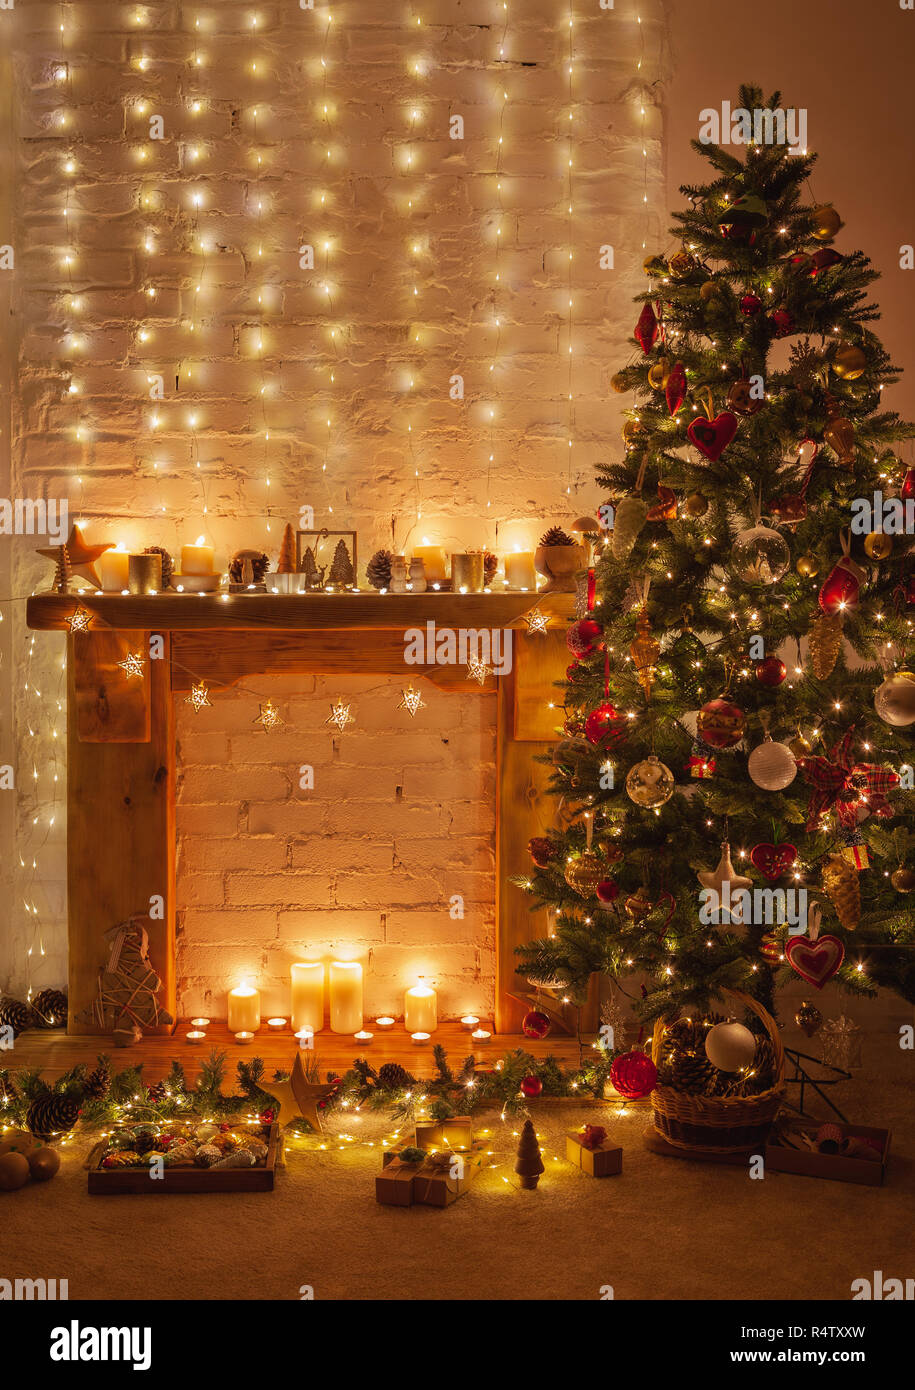 Beautiful Warm Christmas Setting Decorated Fireplace With Wood Mantelpiece Lit Up Christmas Tree With Red Gold Green Baubles And Ornaments Stars Li Stock Photo Alamy